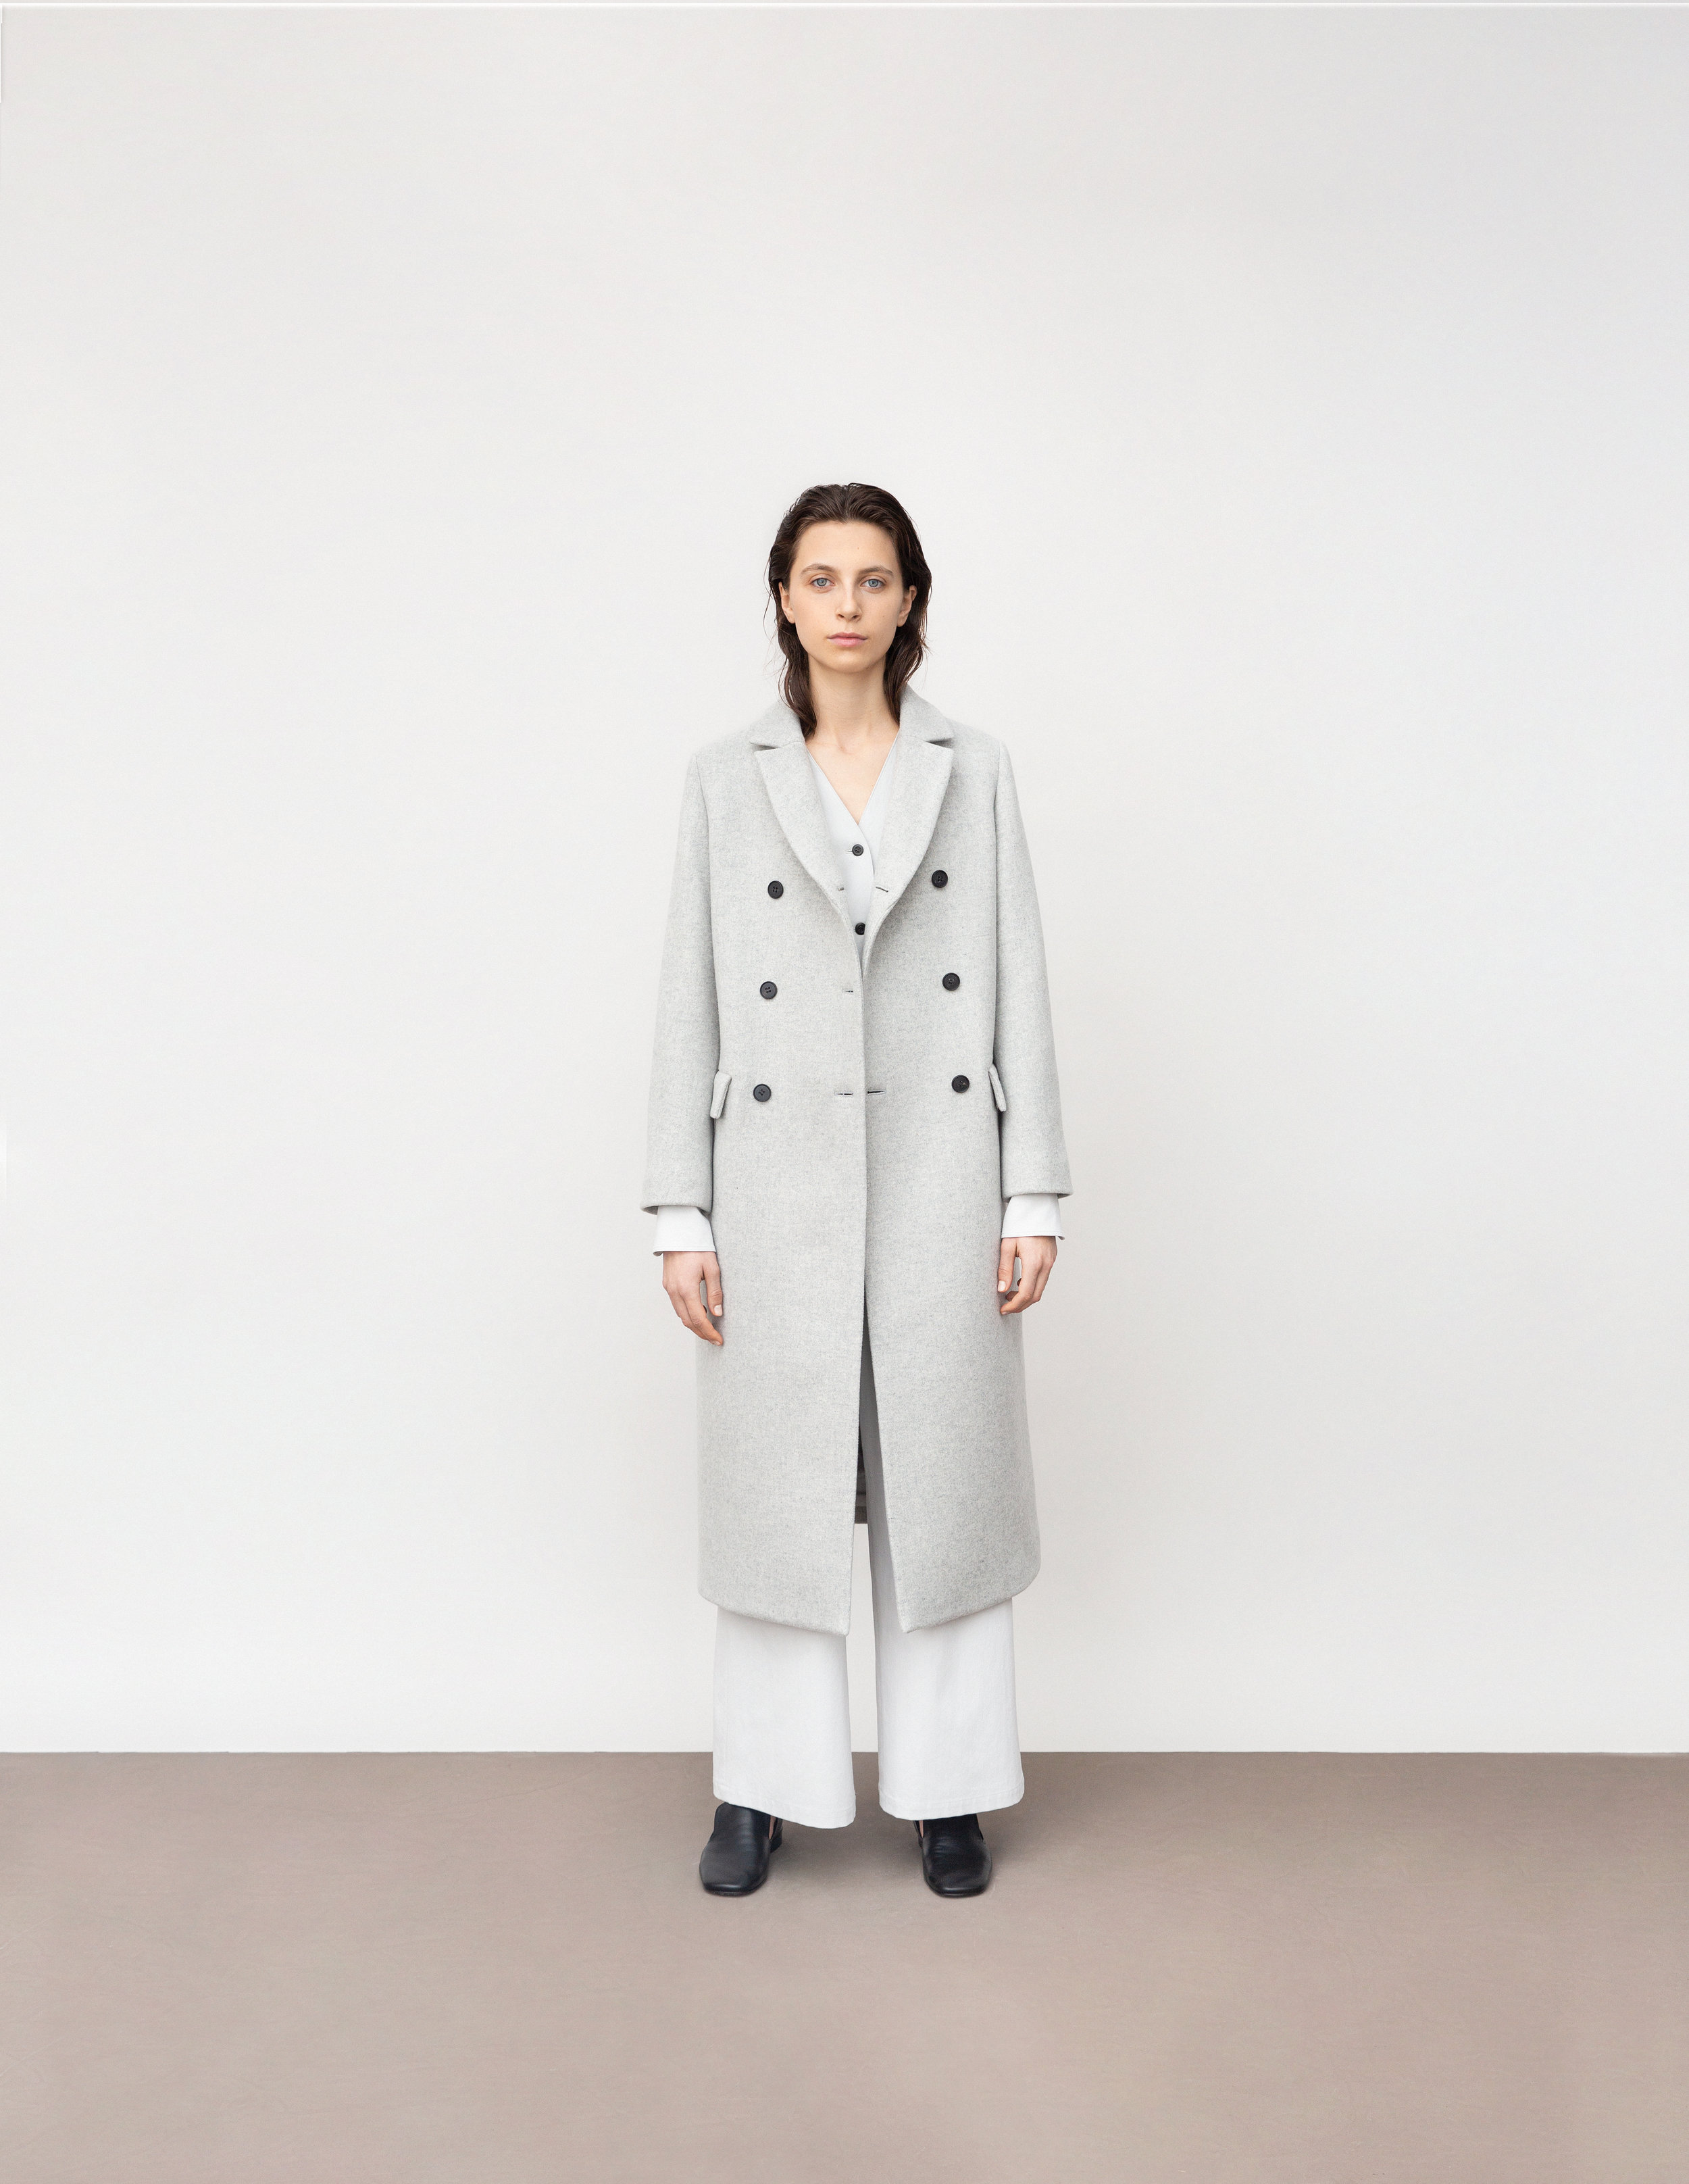 <b>10</b><br>Venice wool coat<br>Gretel dry cotton shirt<br>Hazel wide dry cotton pants